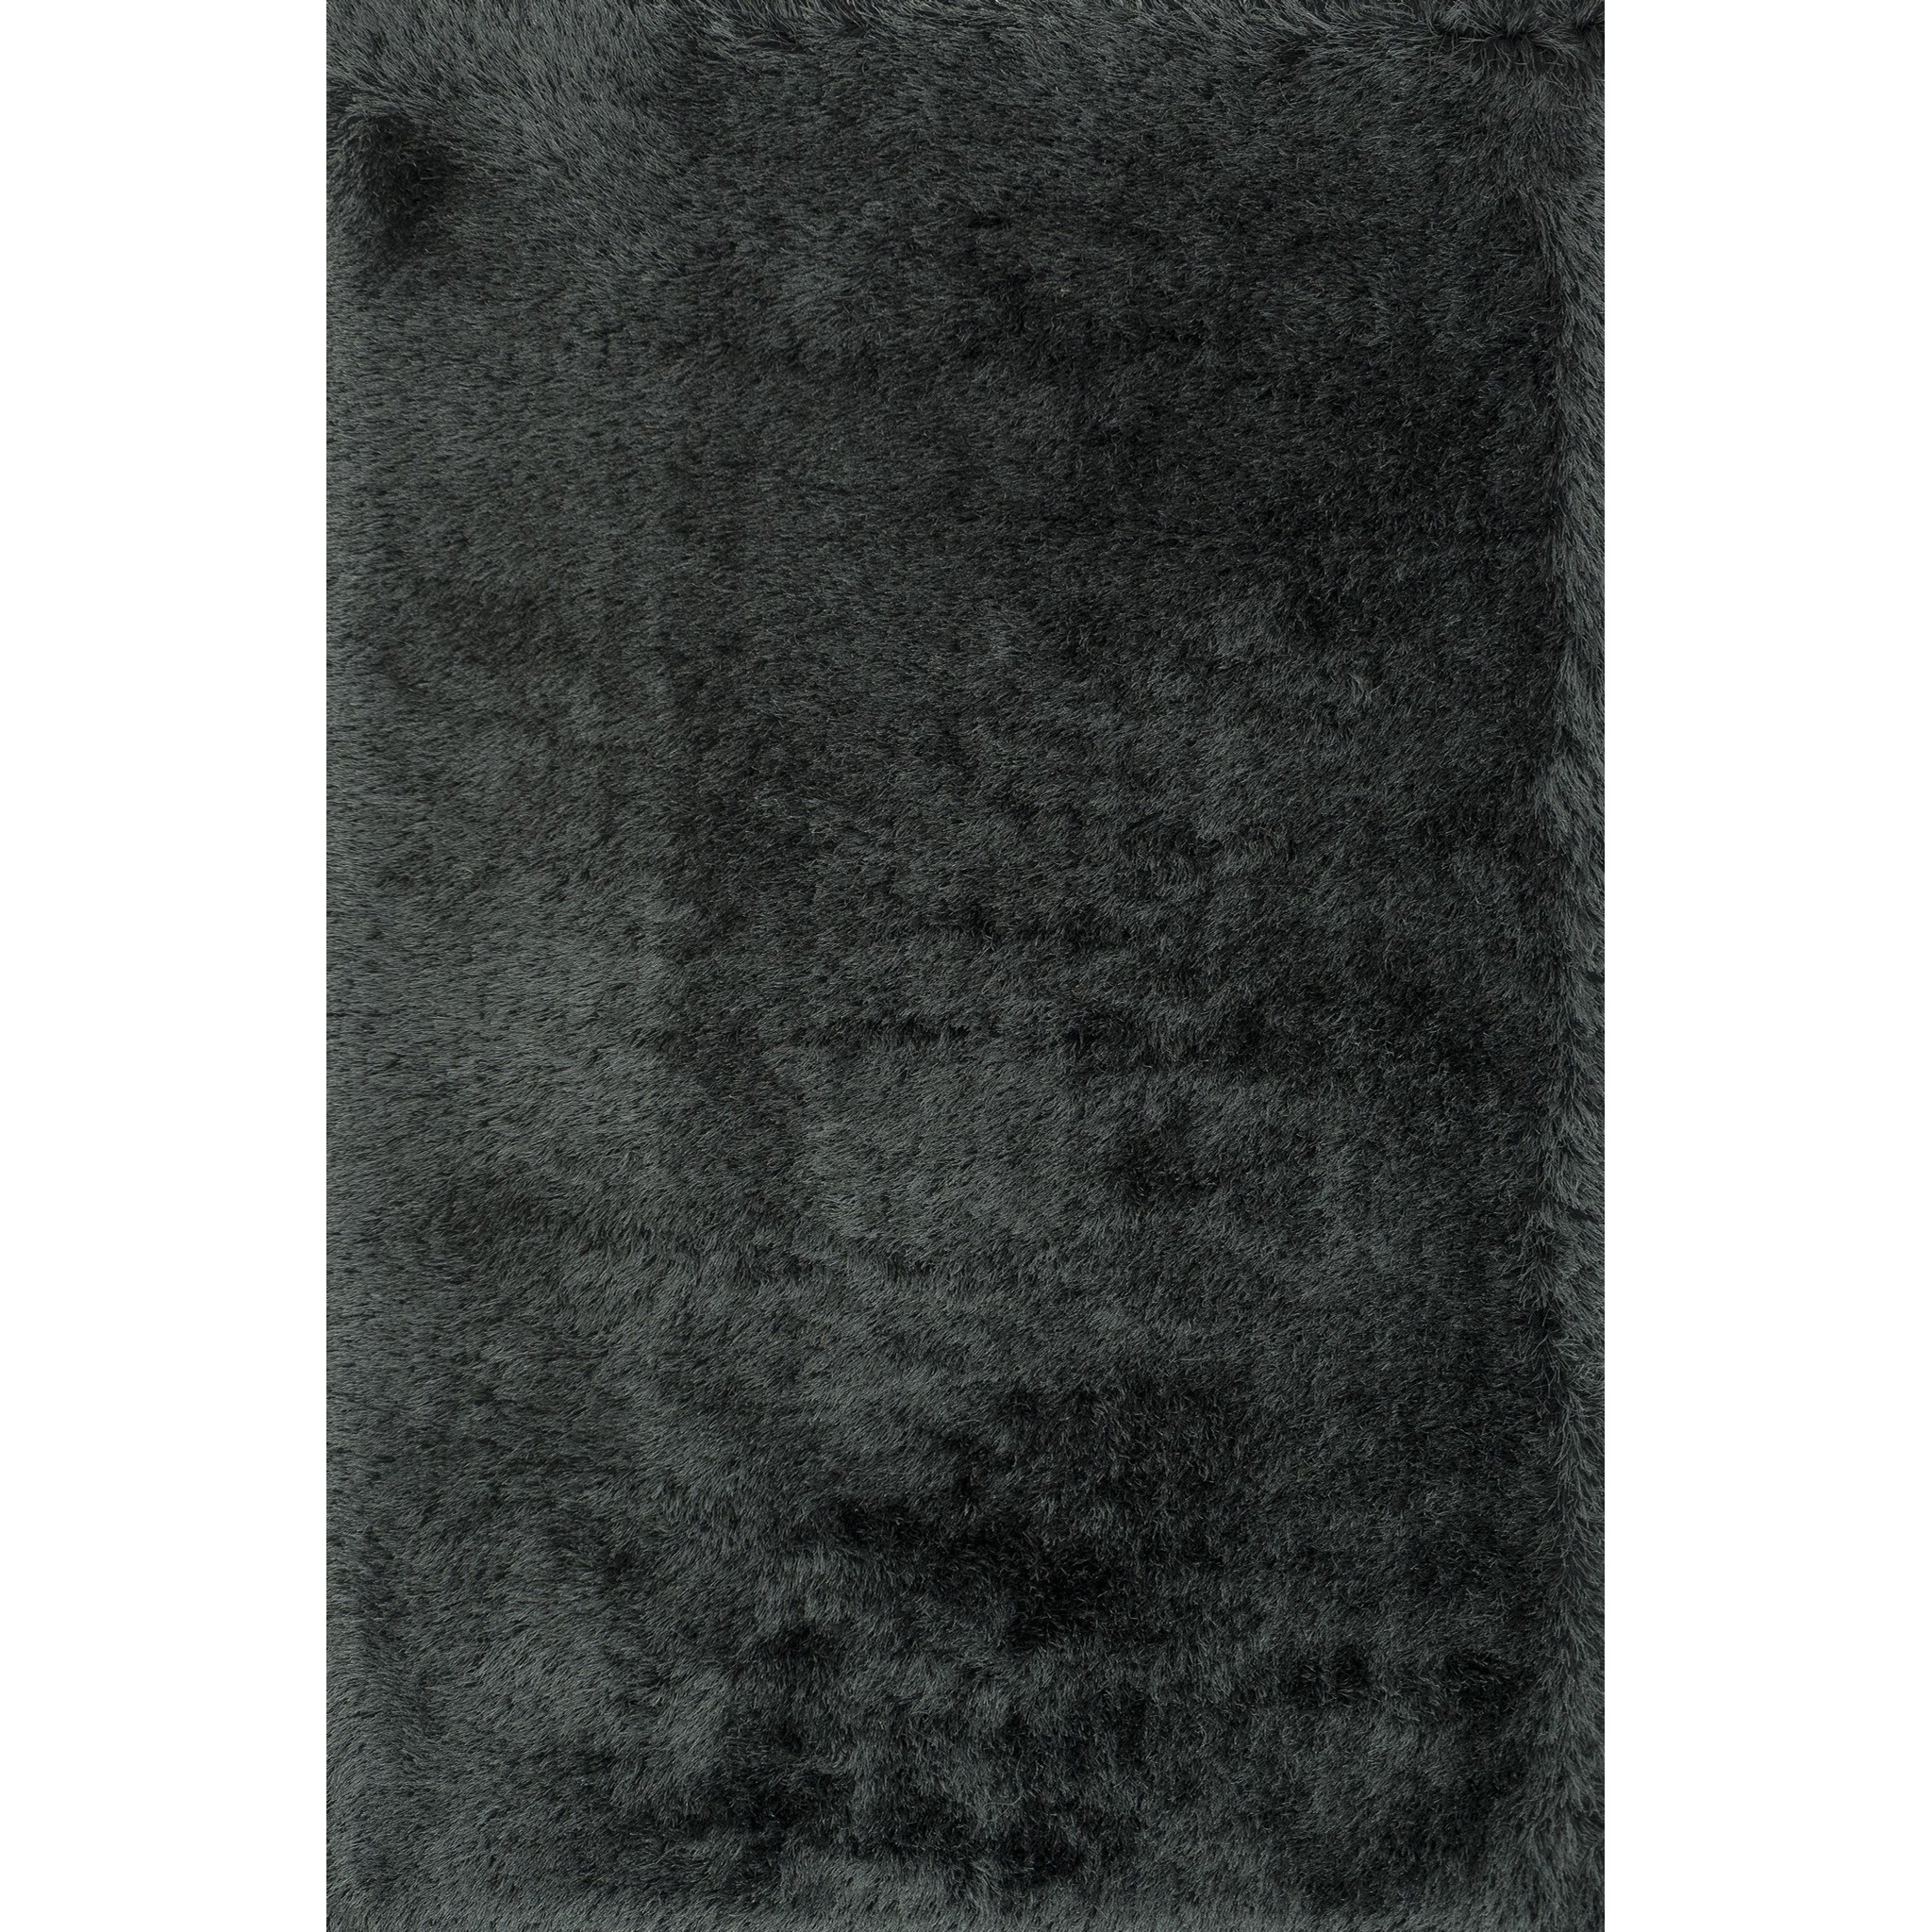 "Allure Shag 7'-6"" x 9'-6"" Area Rug by Loloi Rugs at Virginia Furniture Market"